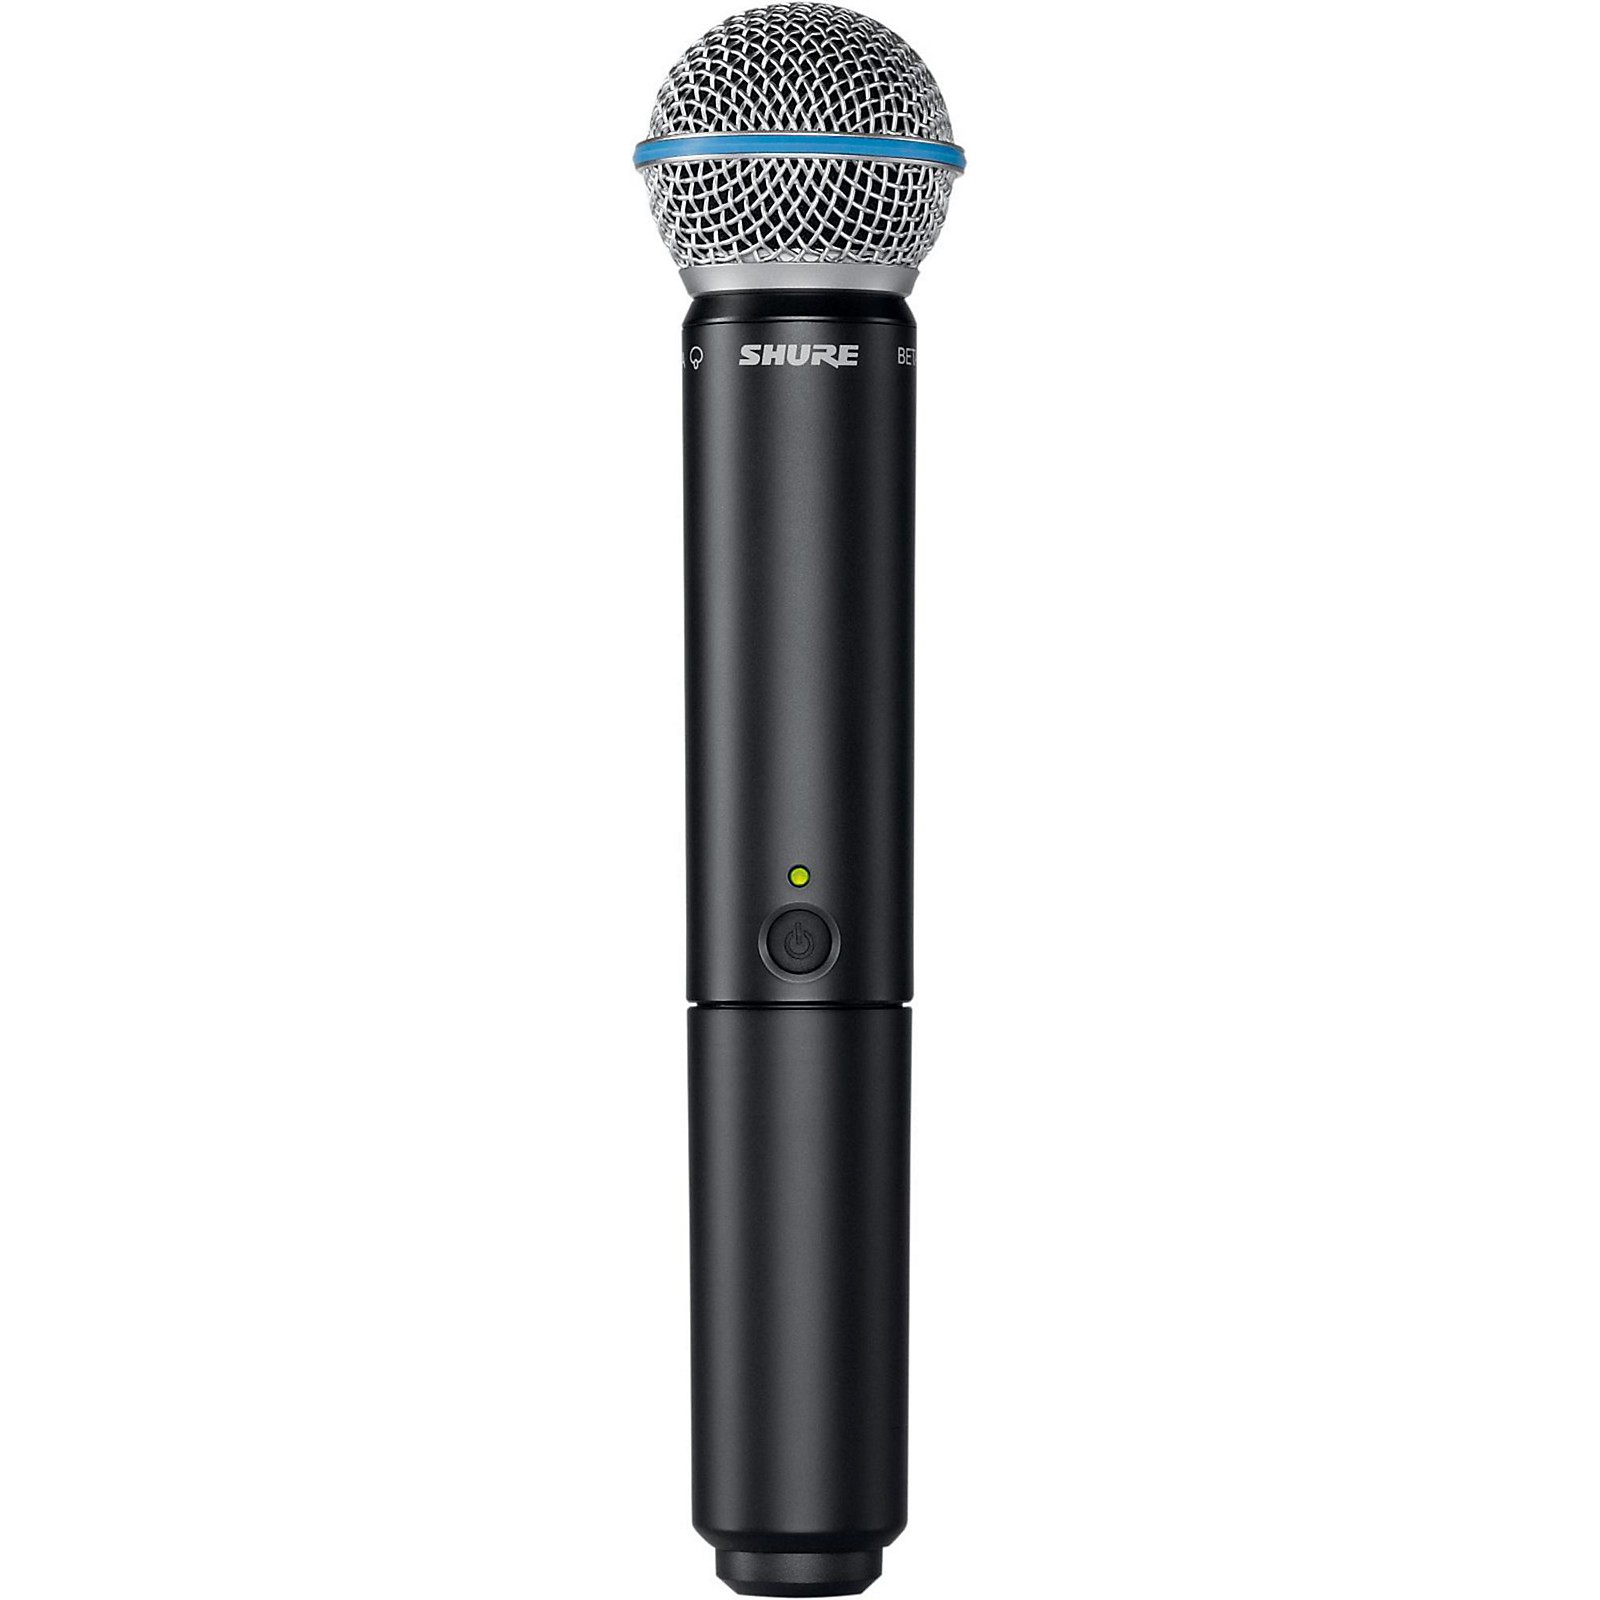 Open Box Shure BLX2/B58 Handheld Wireless Transmitter with Beta 58A Capsule